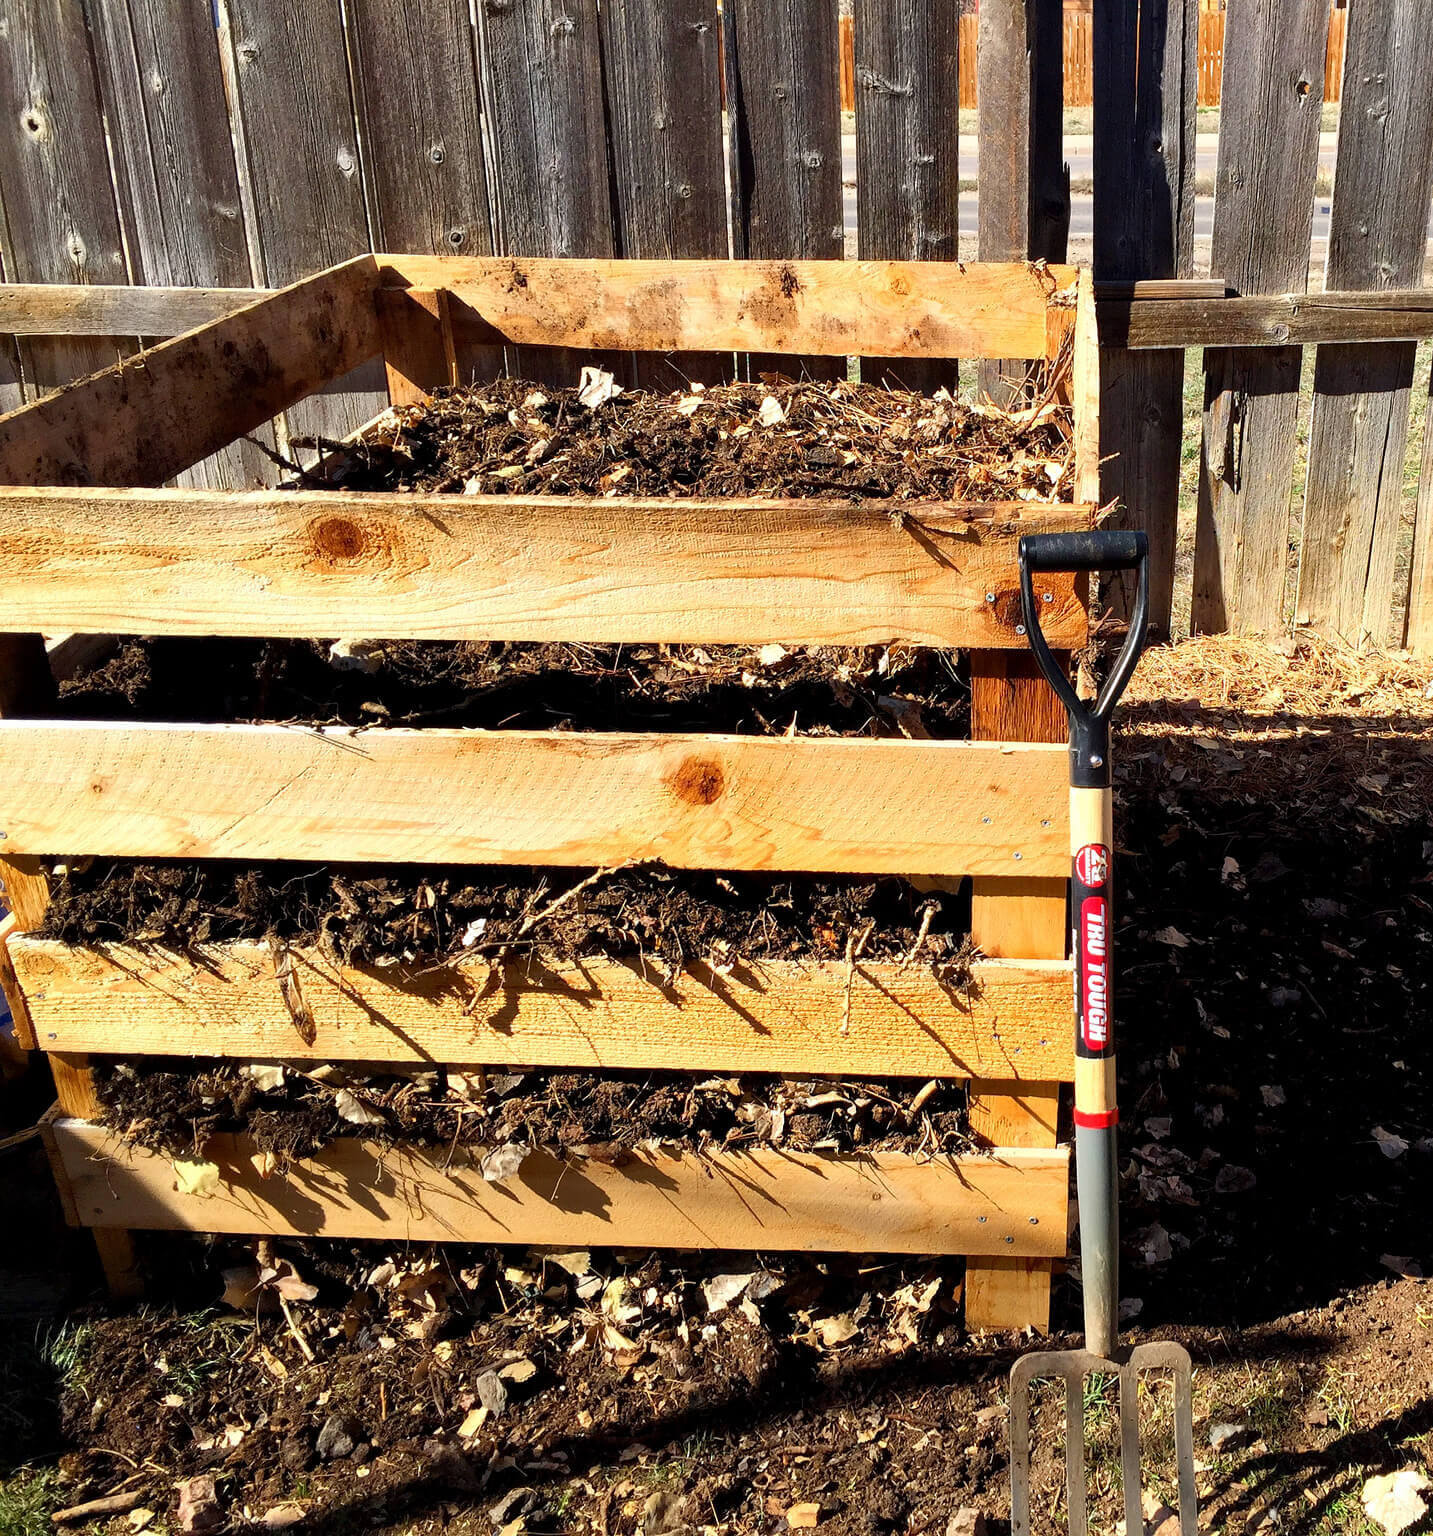 shovel and compost bin